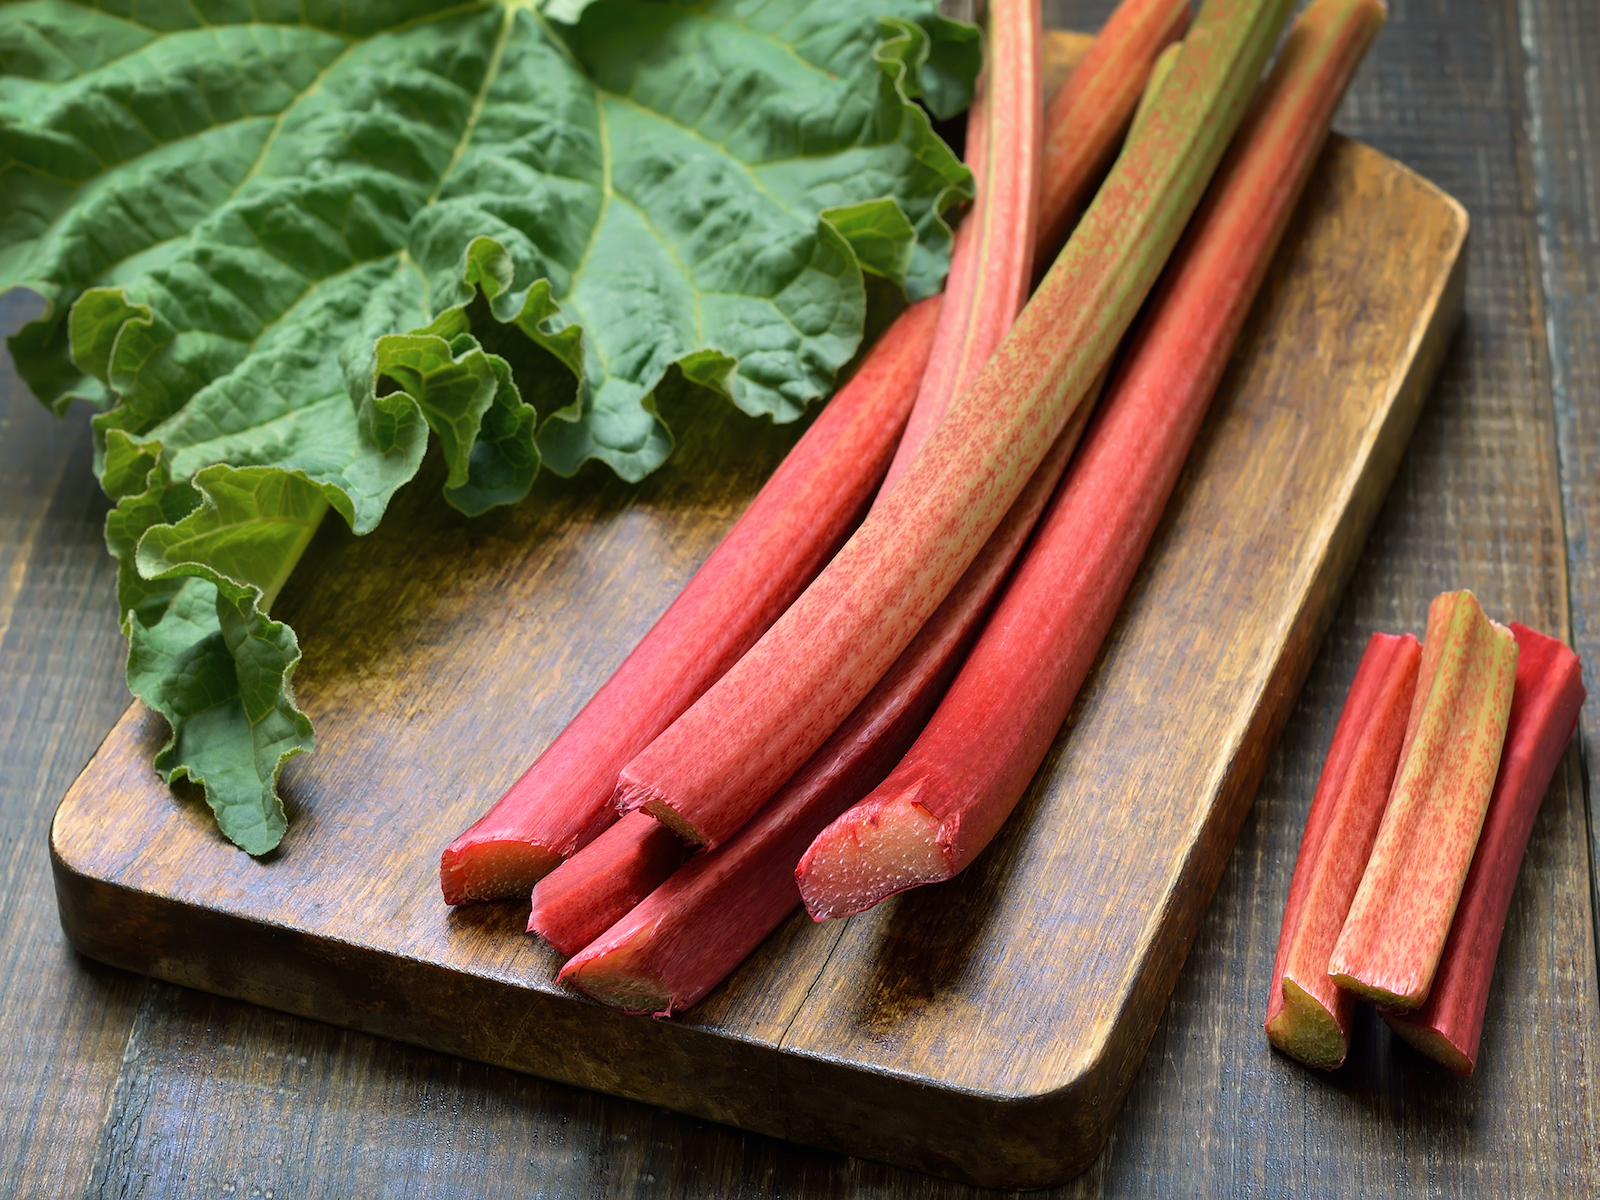 This One Trick Will Make Rhubarb Taste So Much Better